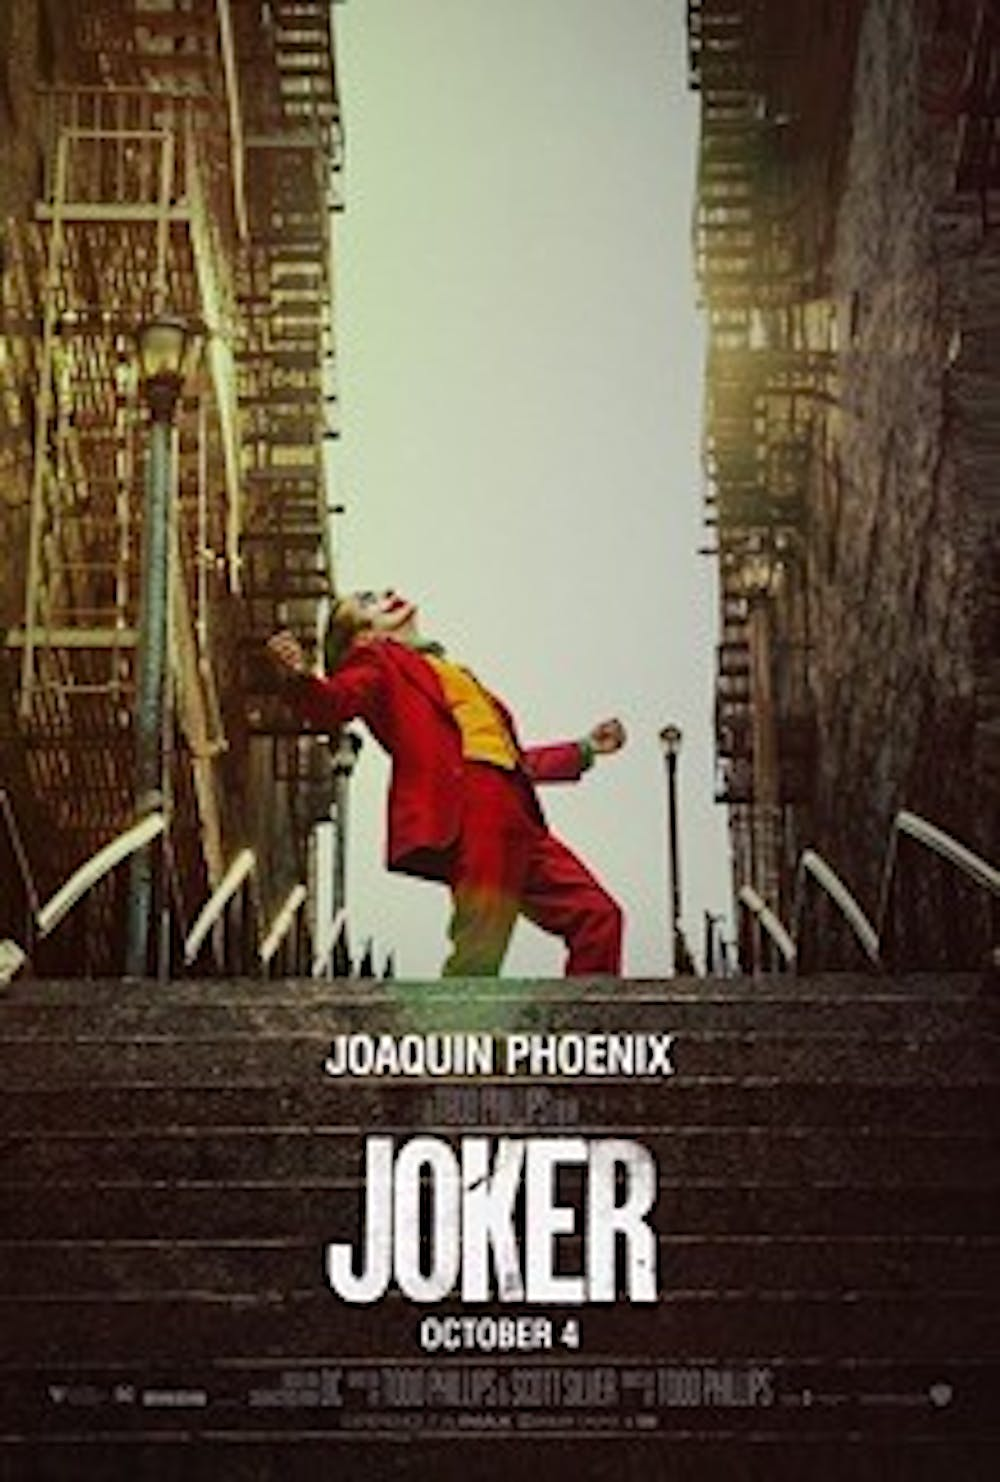 <p>While Joaquin Phoenix delivers a strong performance, the new DC Comics-derived film suffers from a lackluster screenplay. &nbsp;</p>